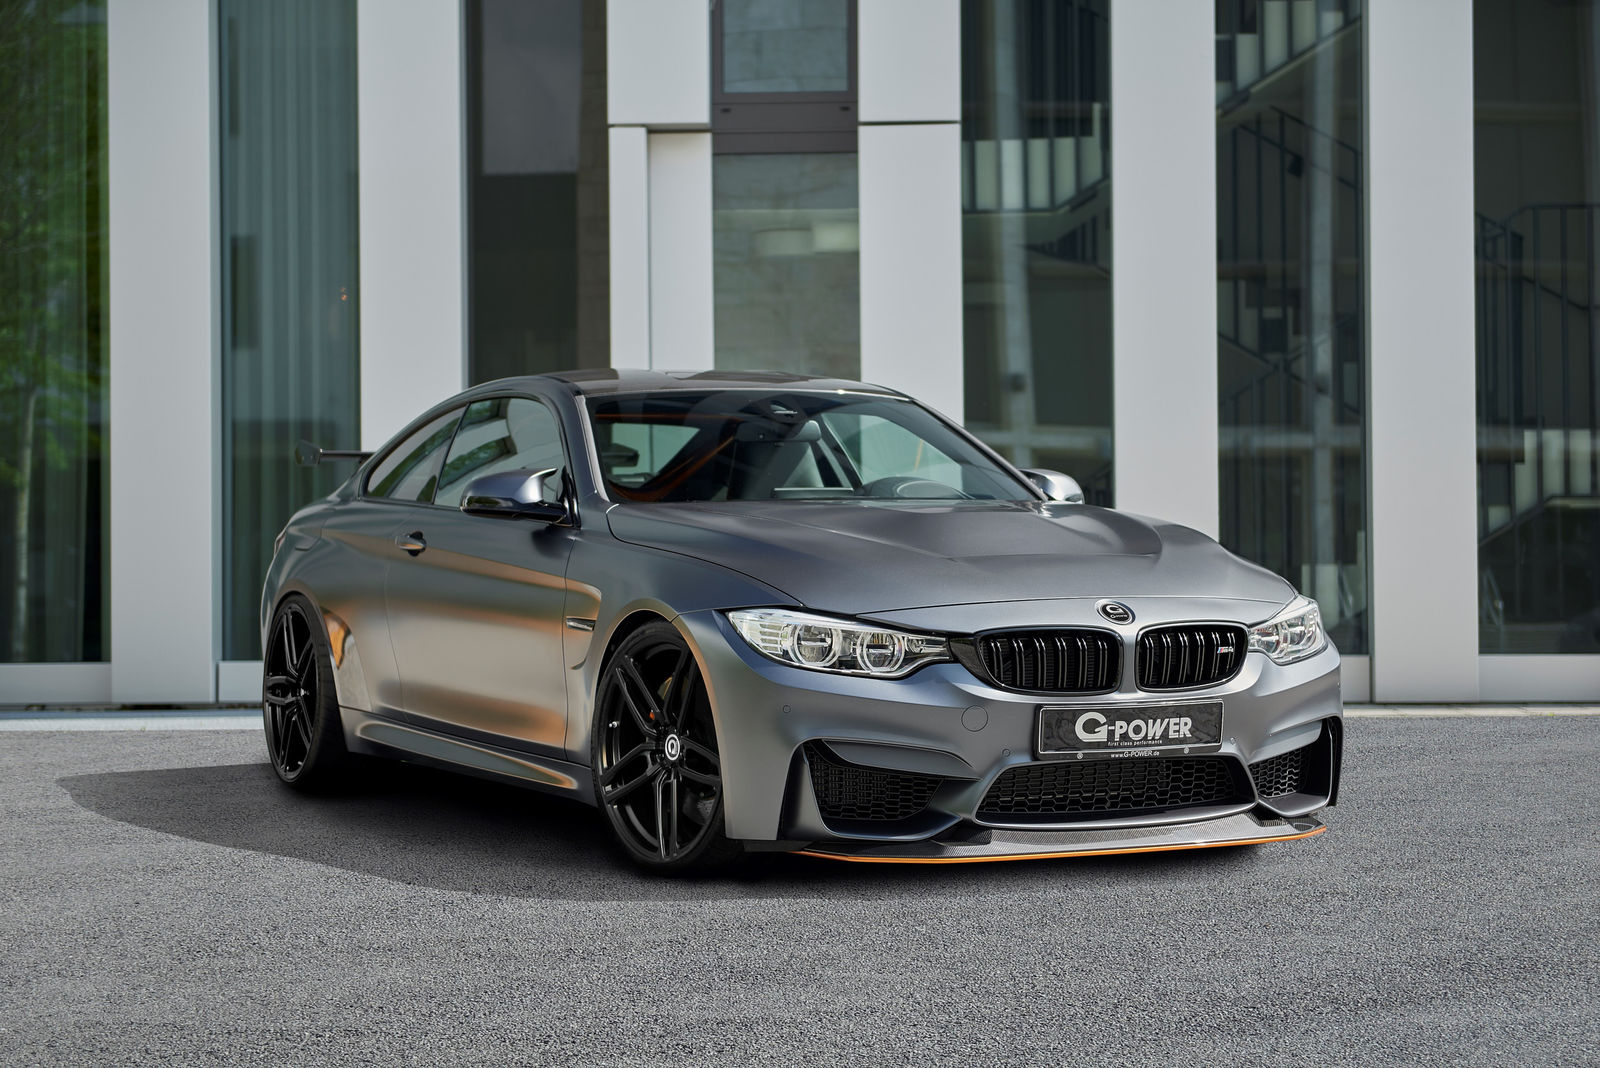 Coupe Series bmw m4 f82 G-Power Unveils A 615hp BMW M4 GTS Upgrade